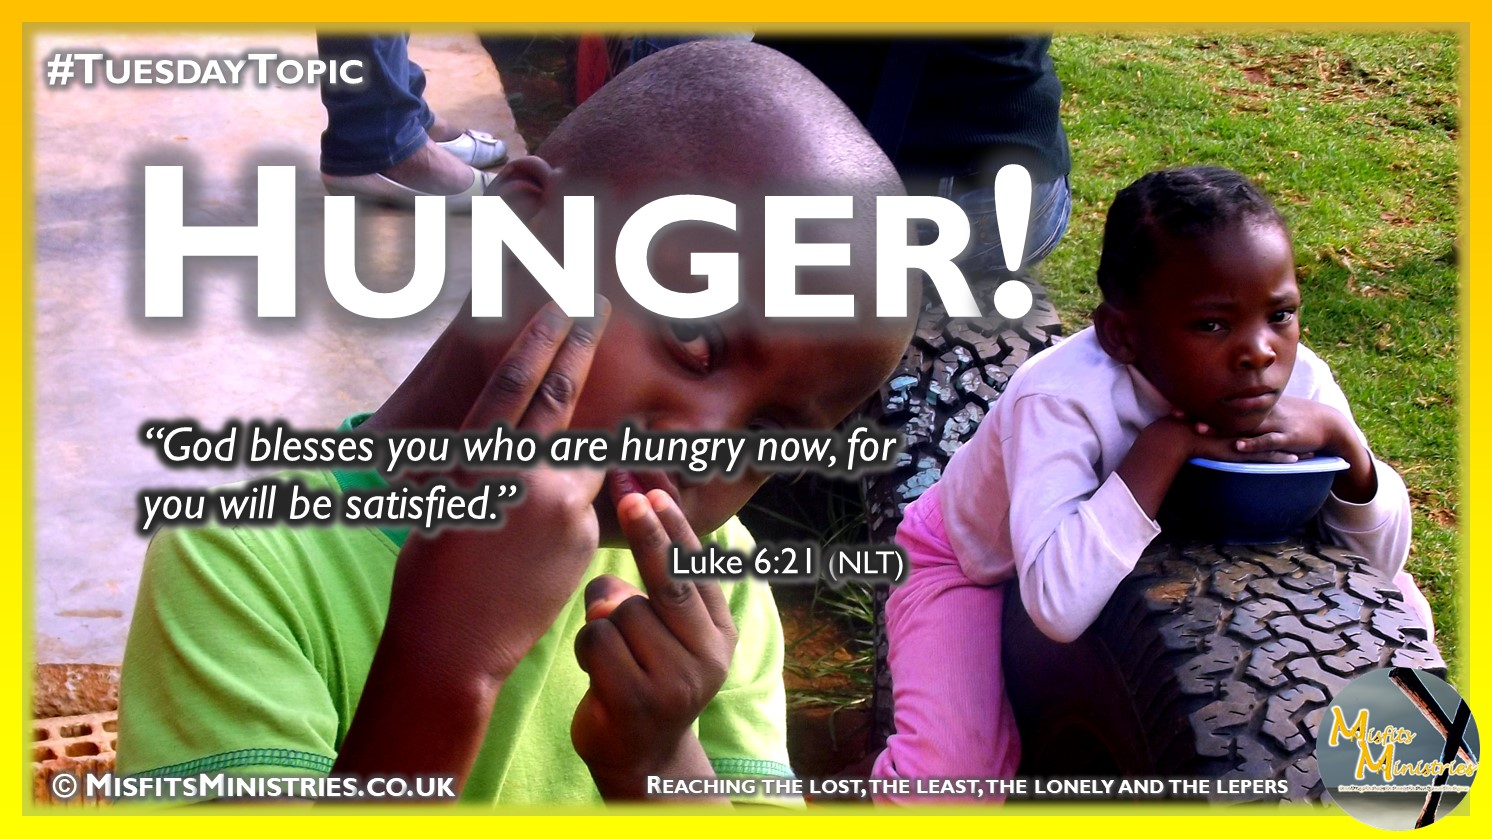 Tuesday Topic 2020-07-28 Hunger